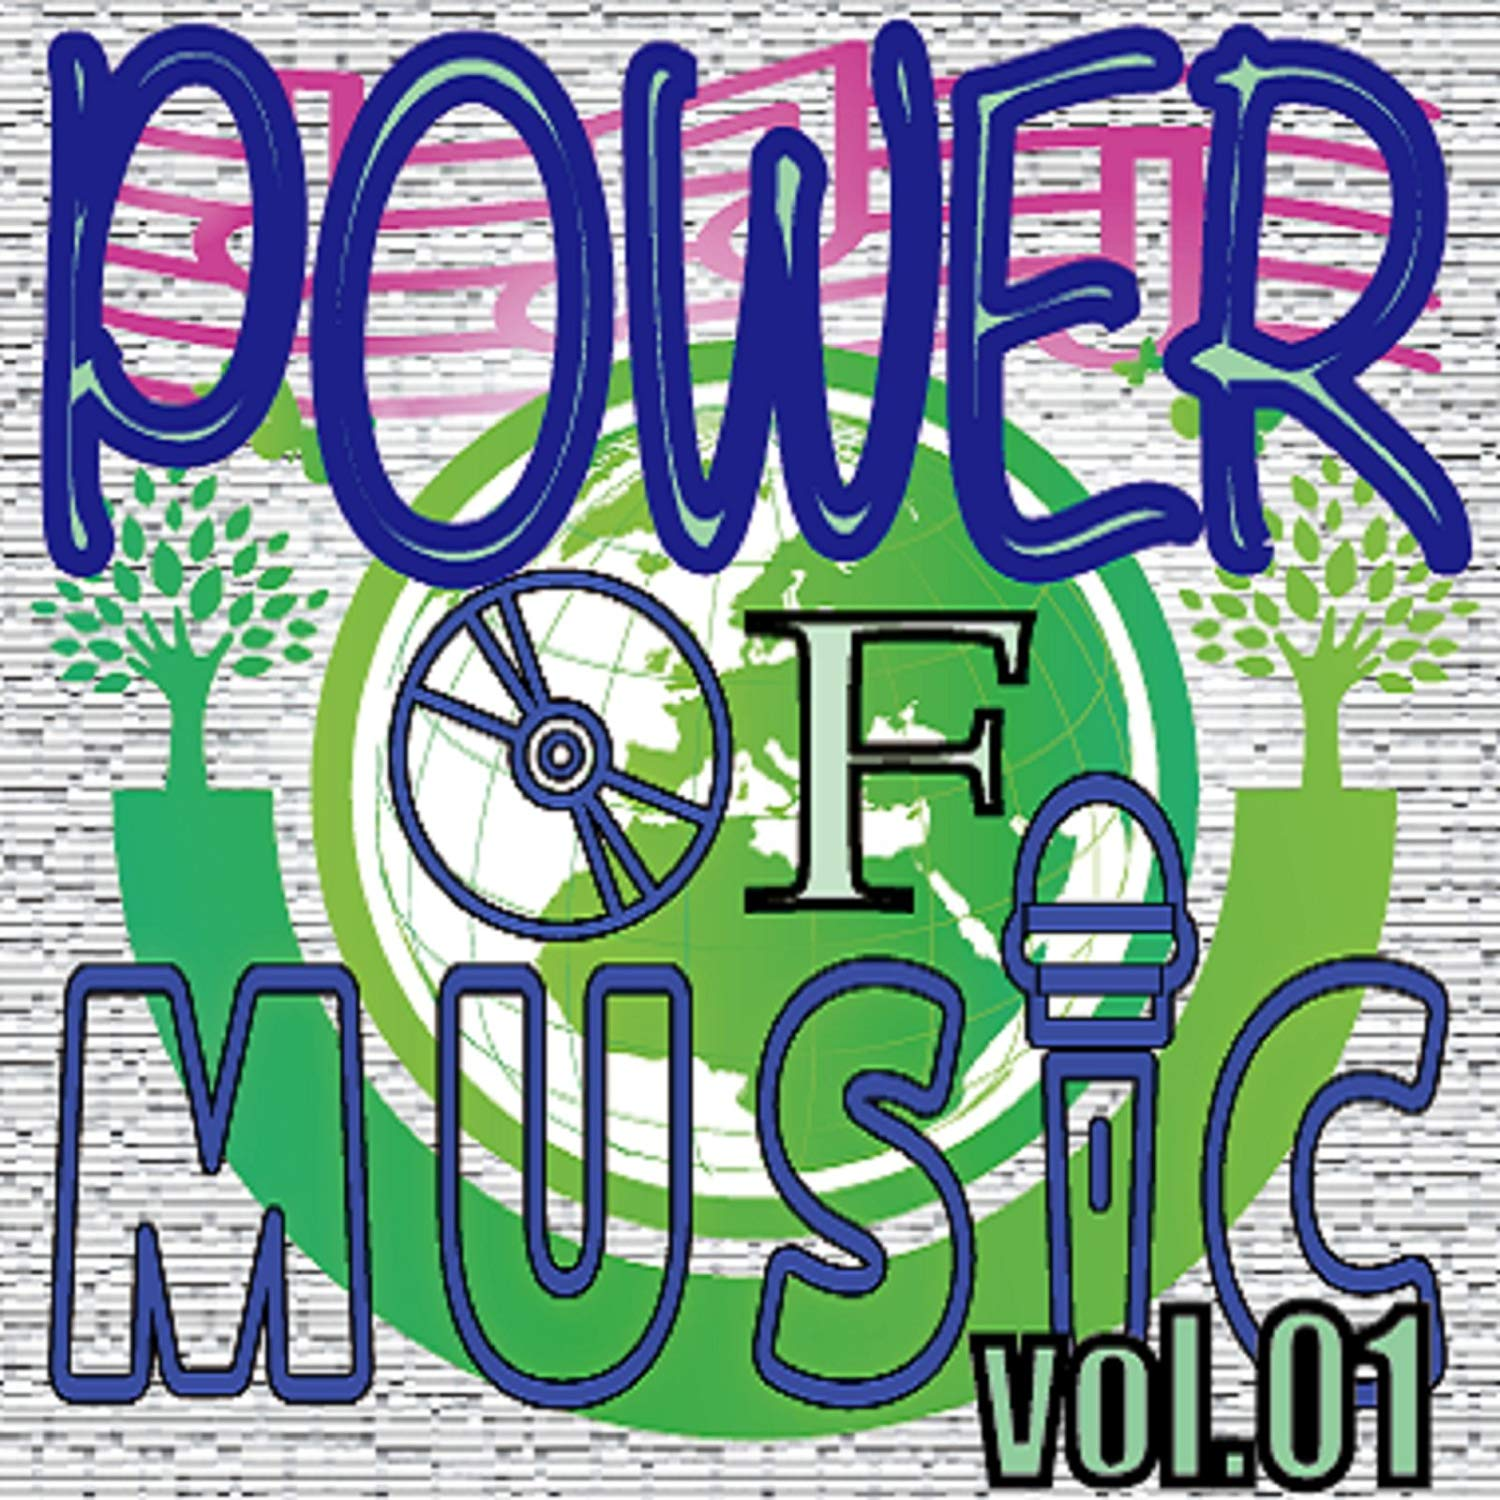 Power Of Music vol.01|ジャケット